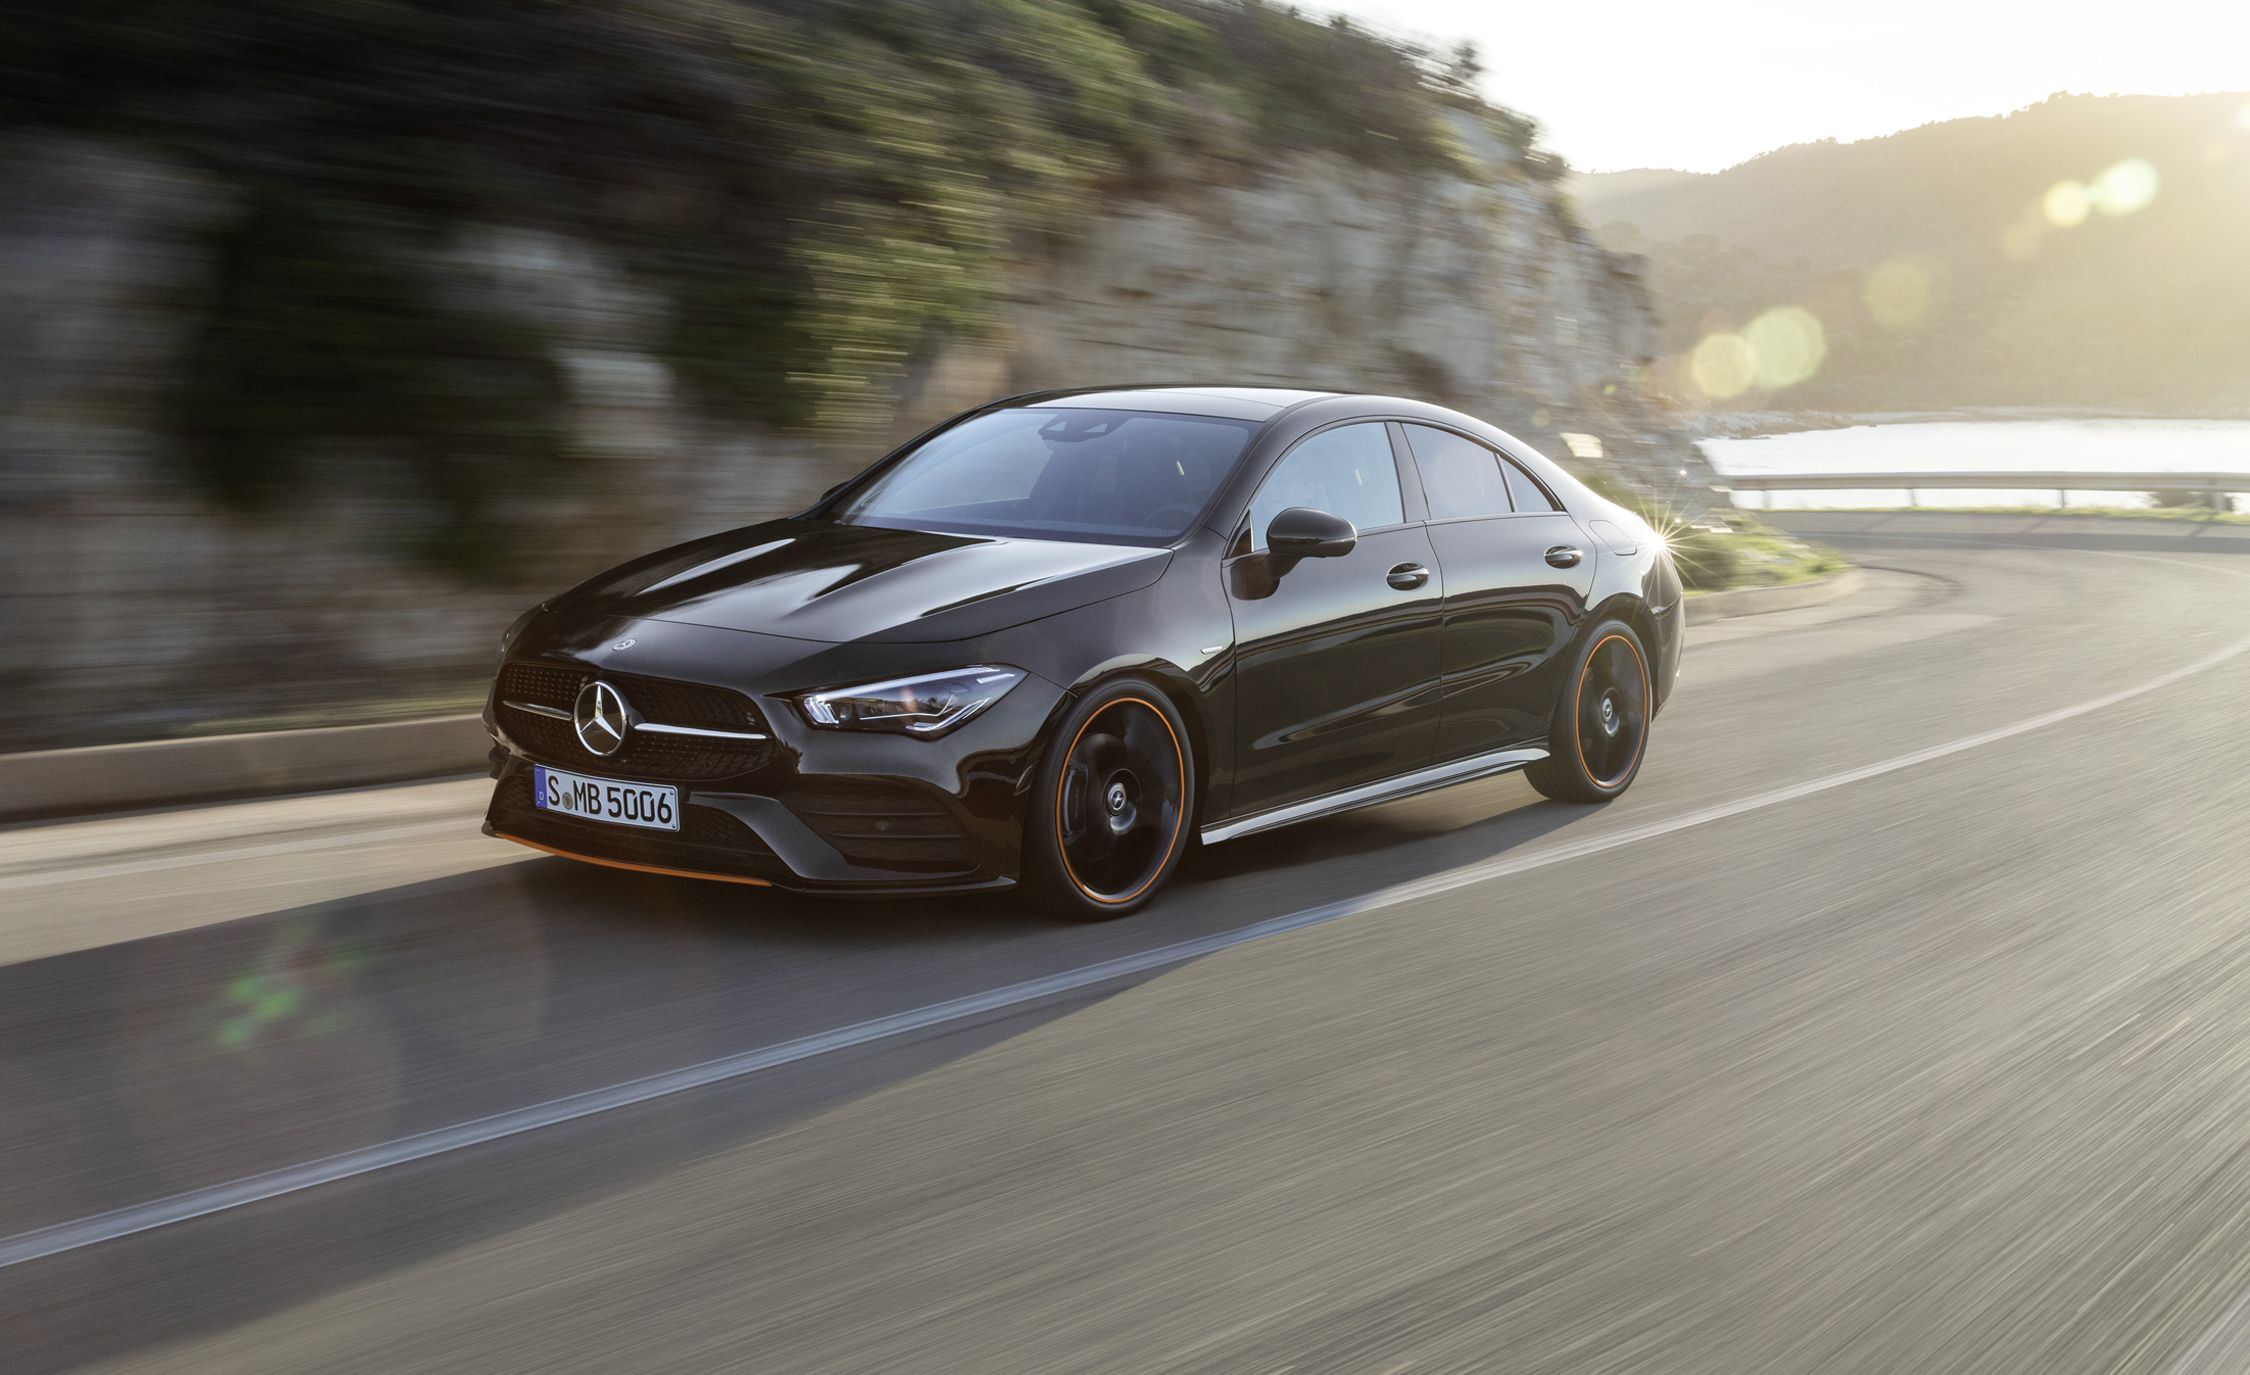 2020 Mercedes Benz CLA   New Compact Four Door Coupe 2250x1375